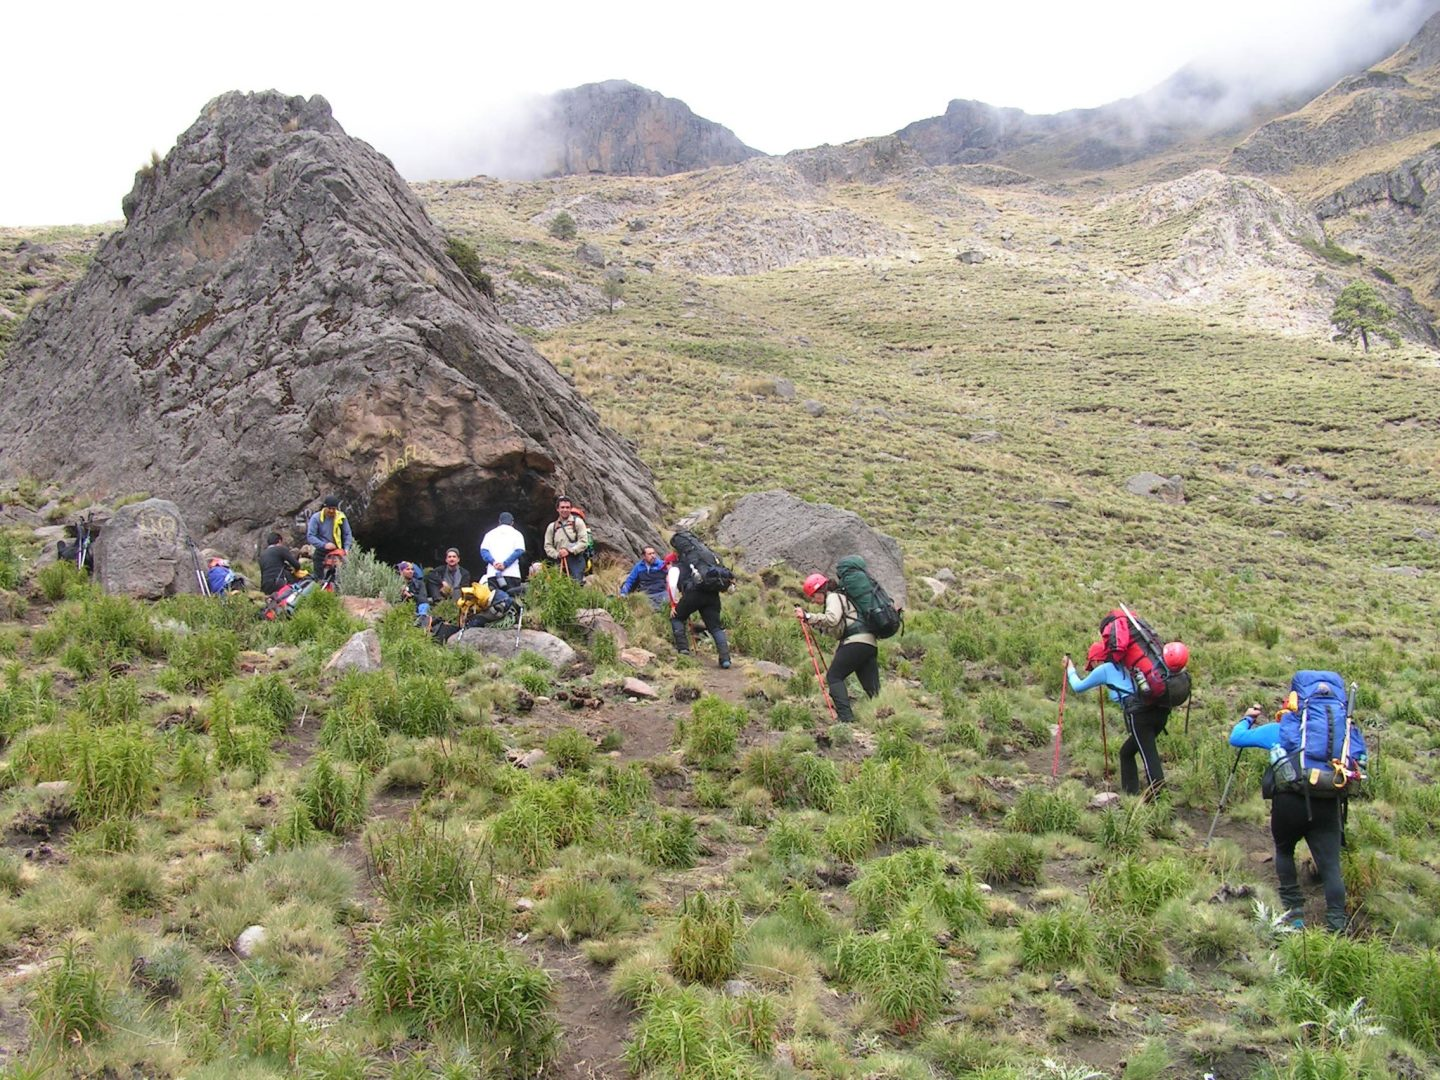 escalada-nos-vulcoes-mexicanos-3